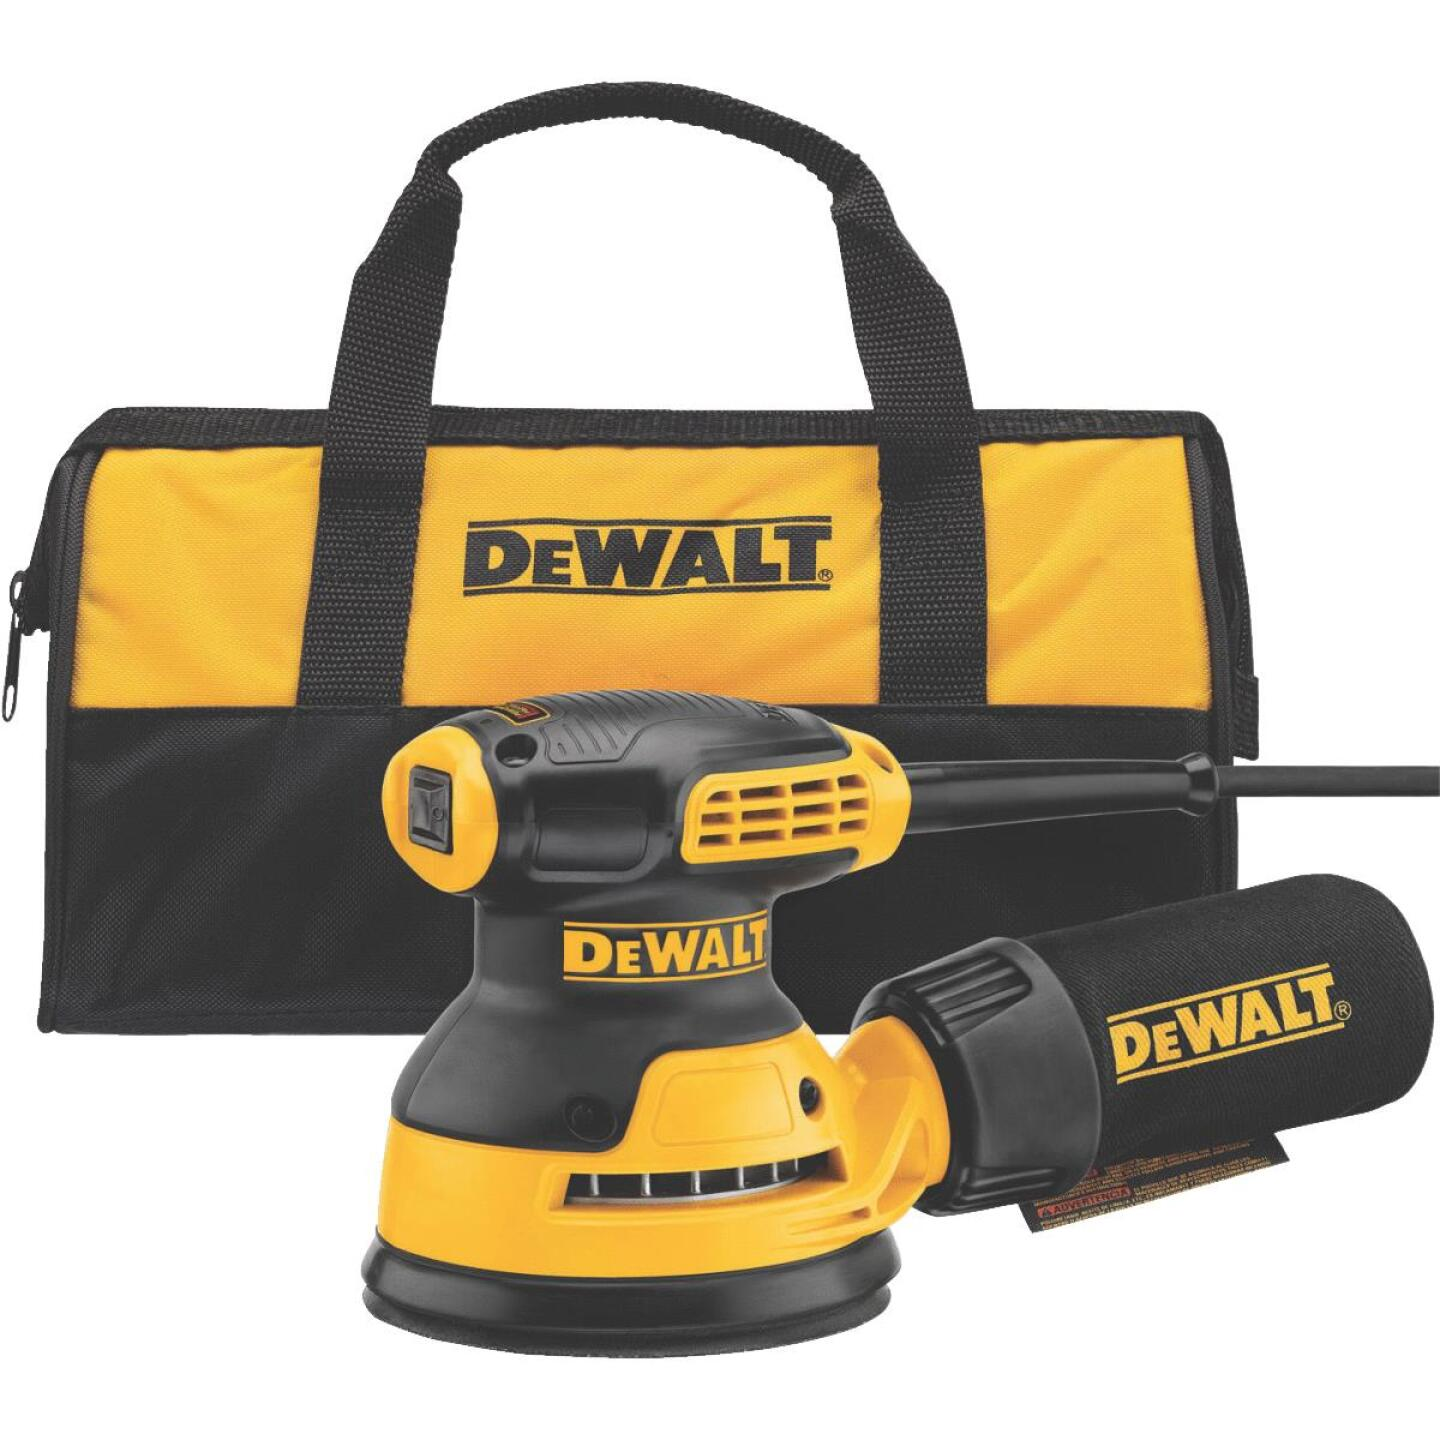 DeWalt 5 In. 3.0A Finish Sander Image 2